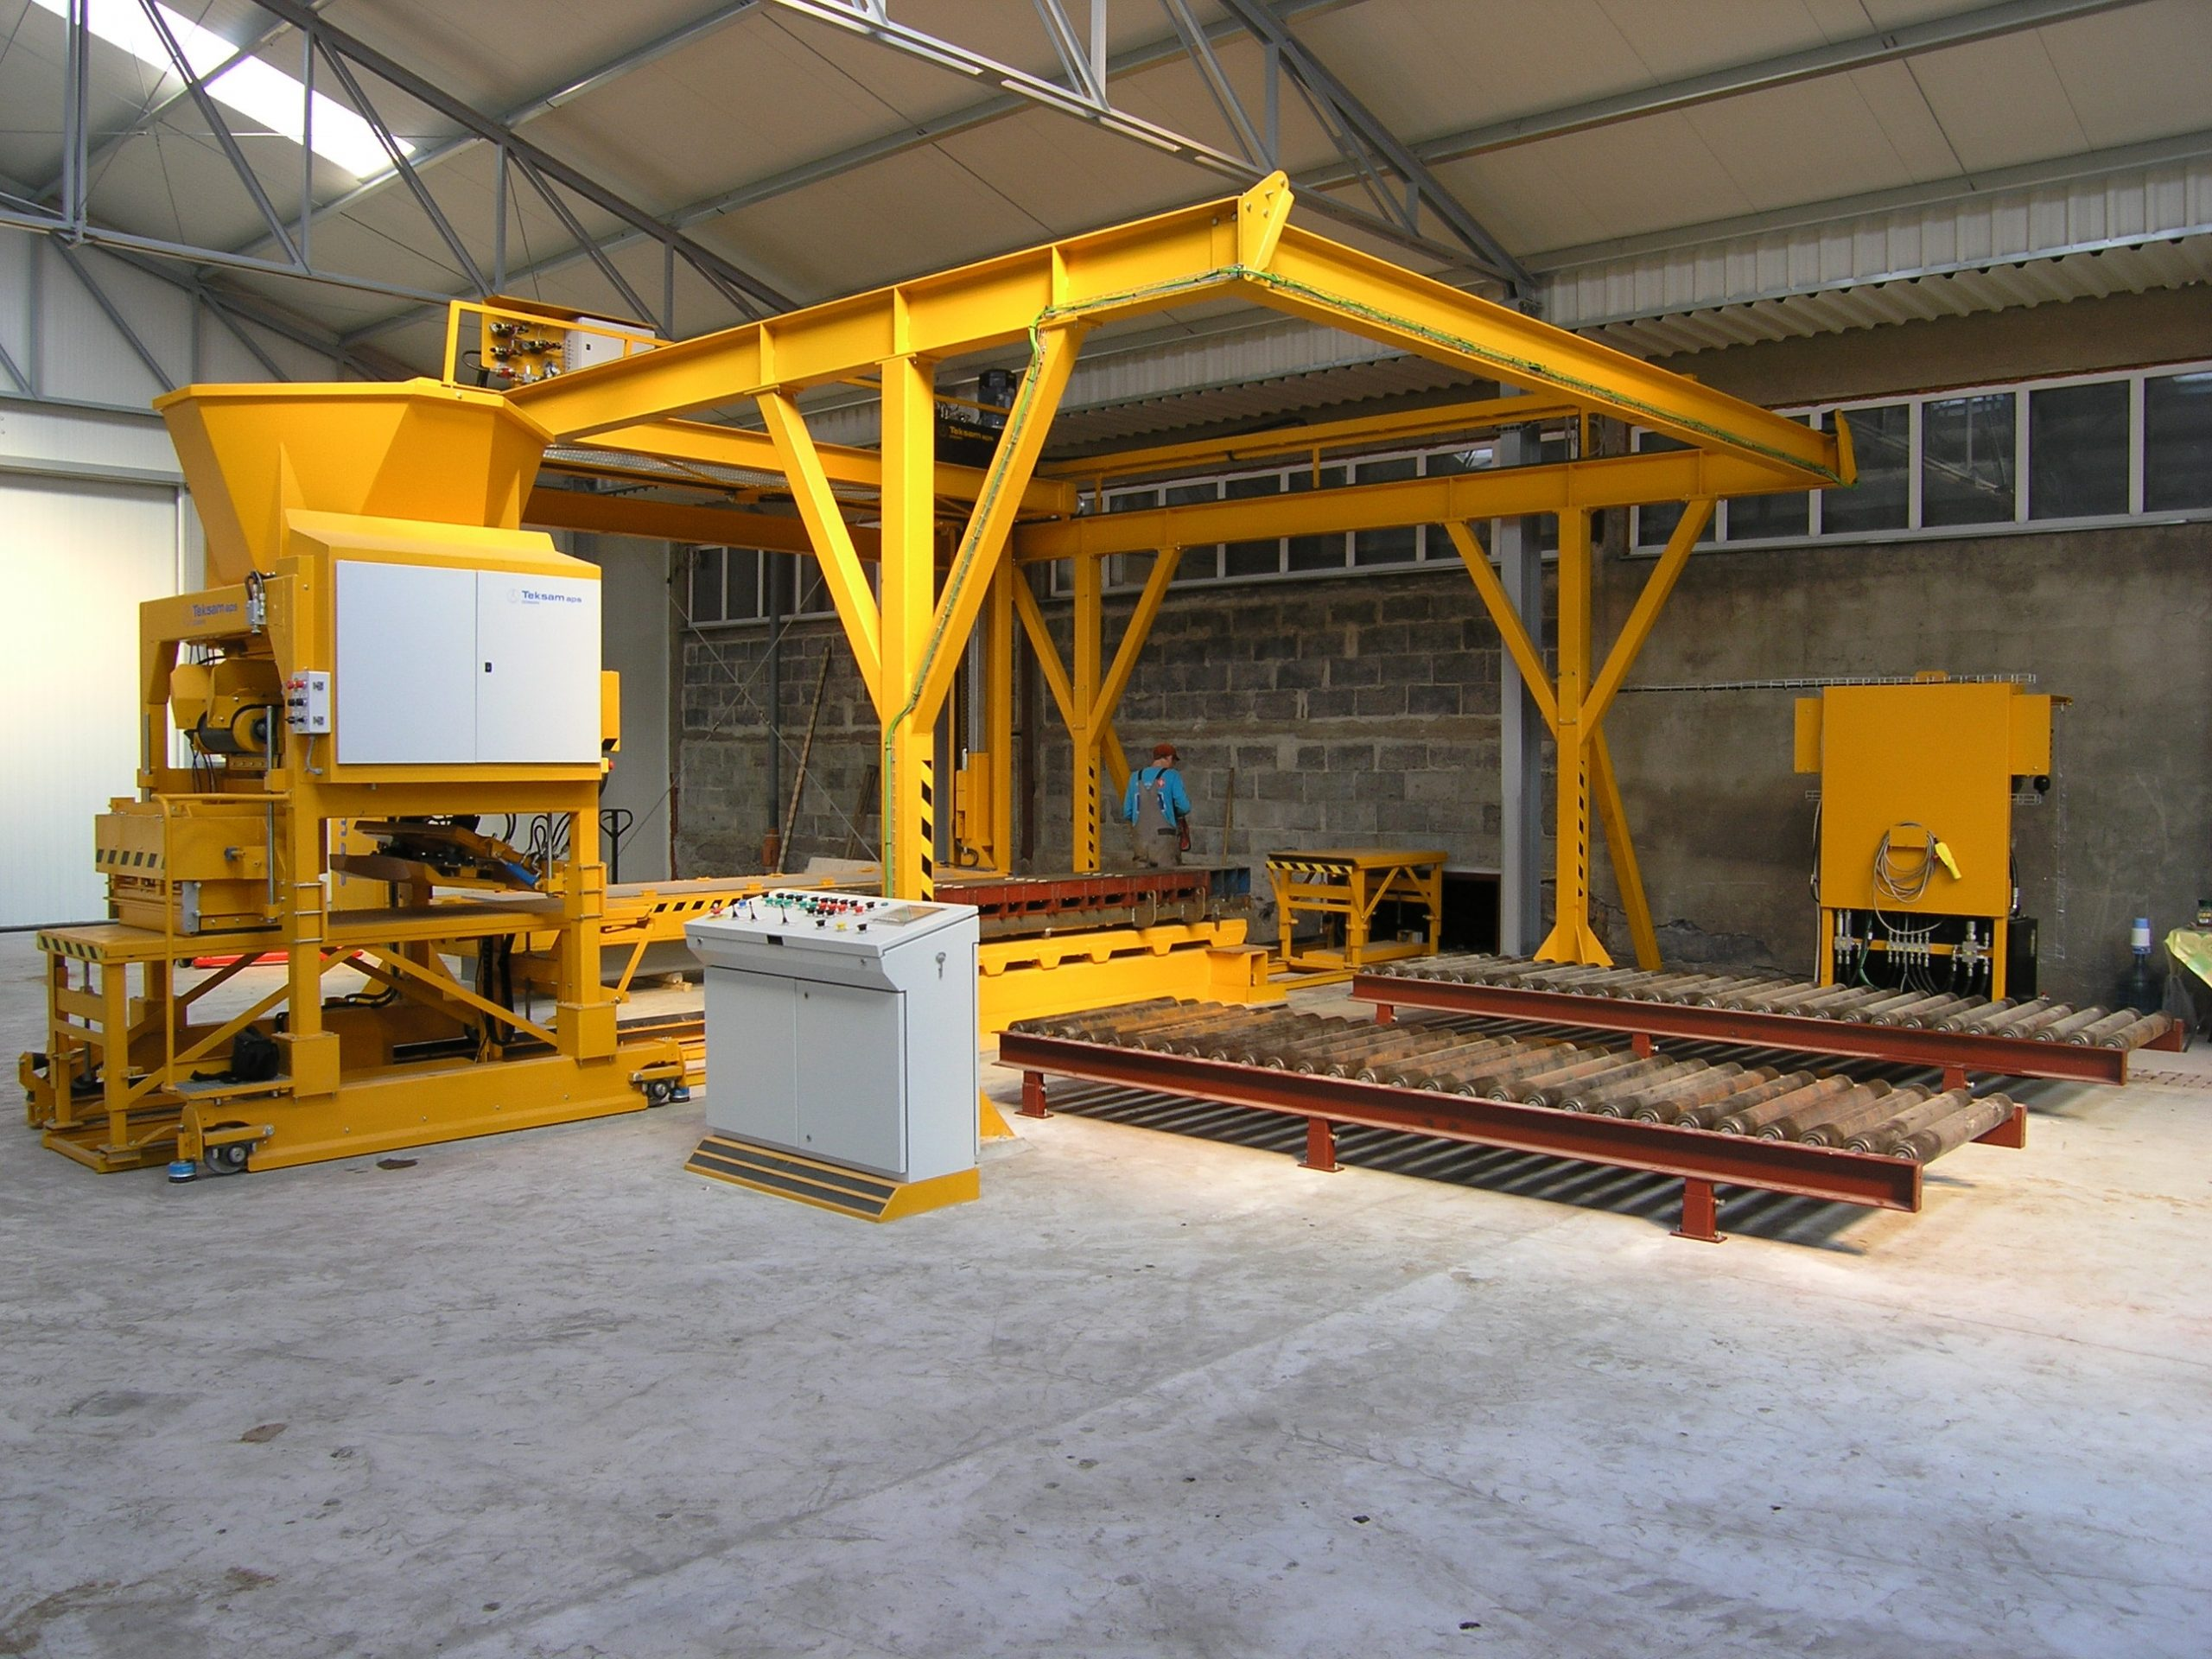 Machine for production of hog and cattle slats